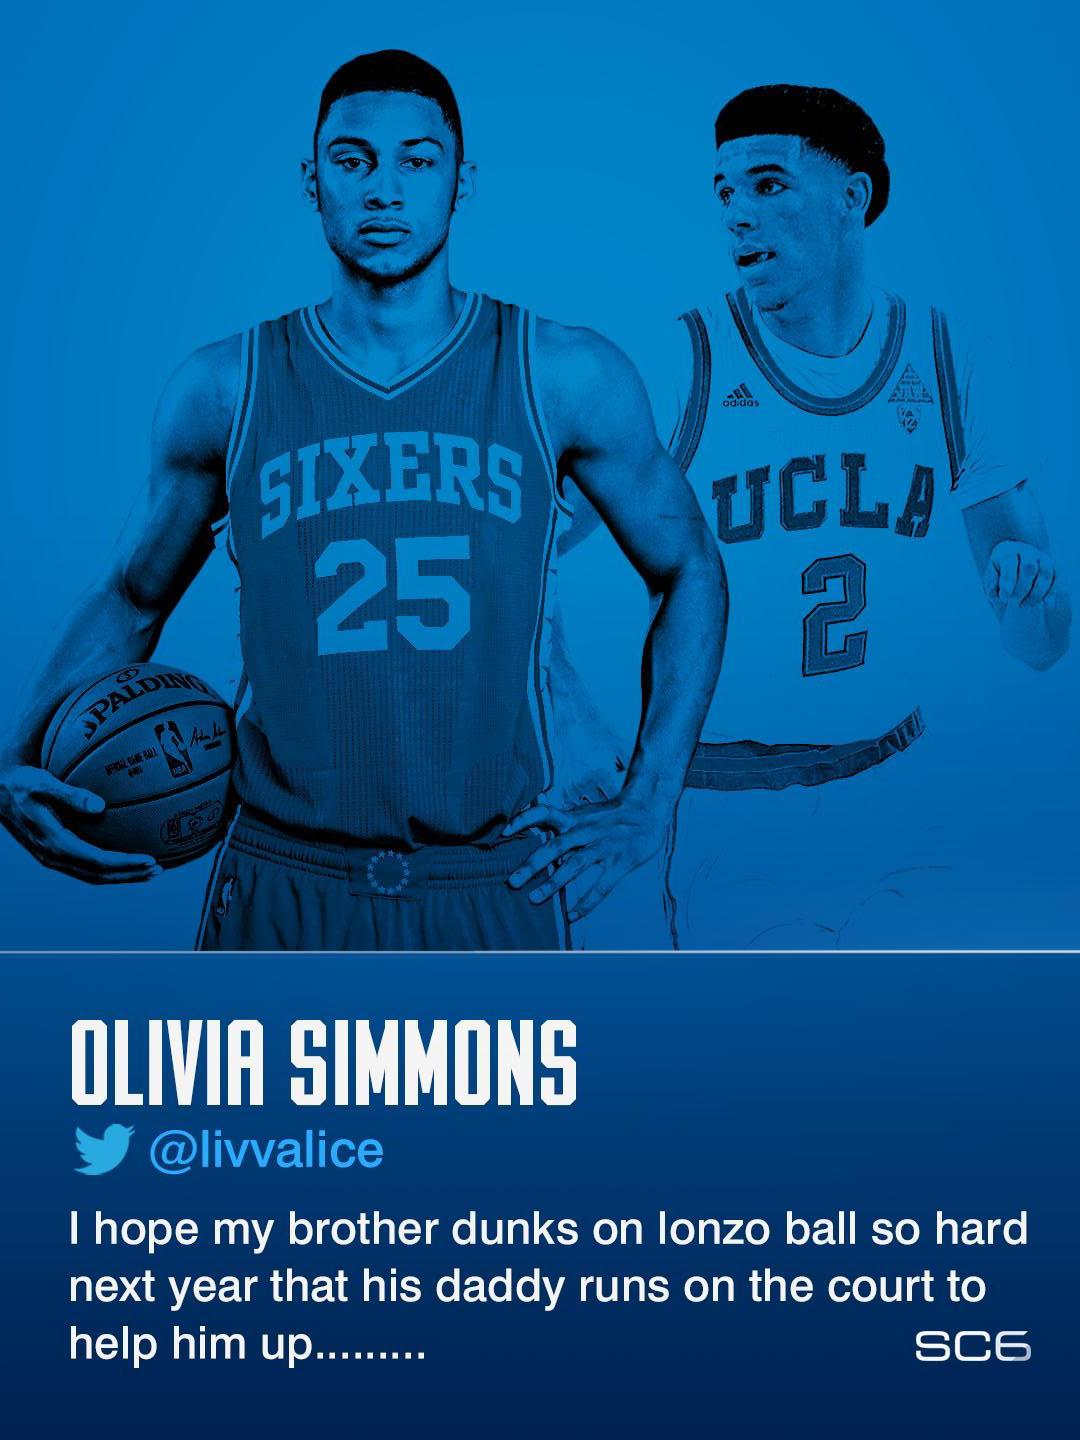 Ben Simmons' sister has no filter when it comes to Lonzo Ball. (via @livvalice) https://t.co/2z2W0CvvDb